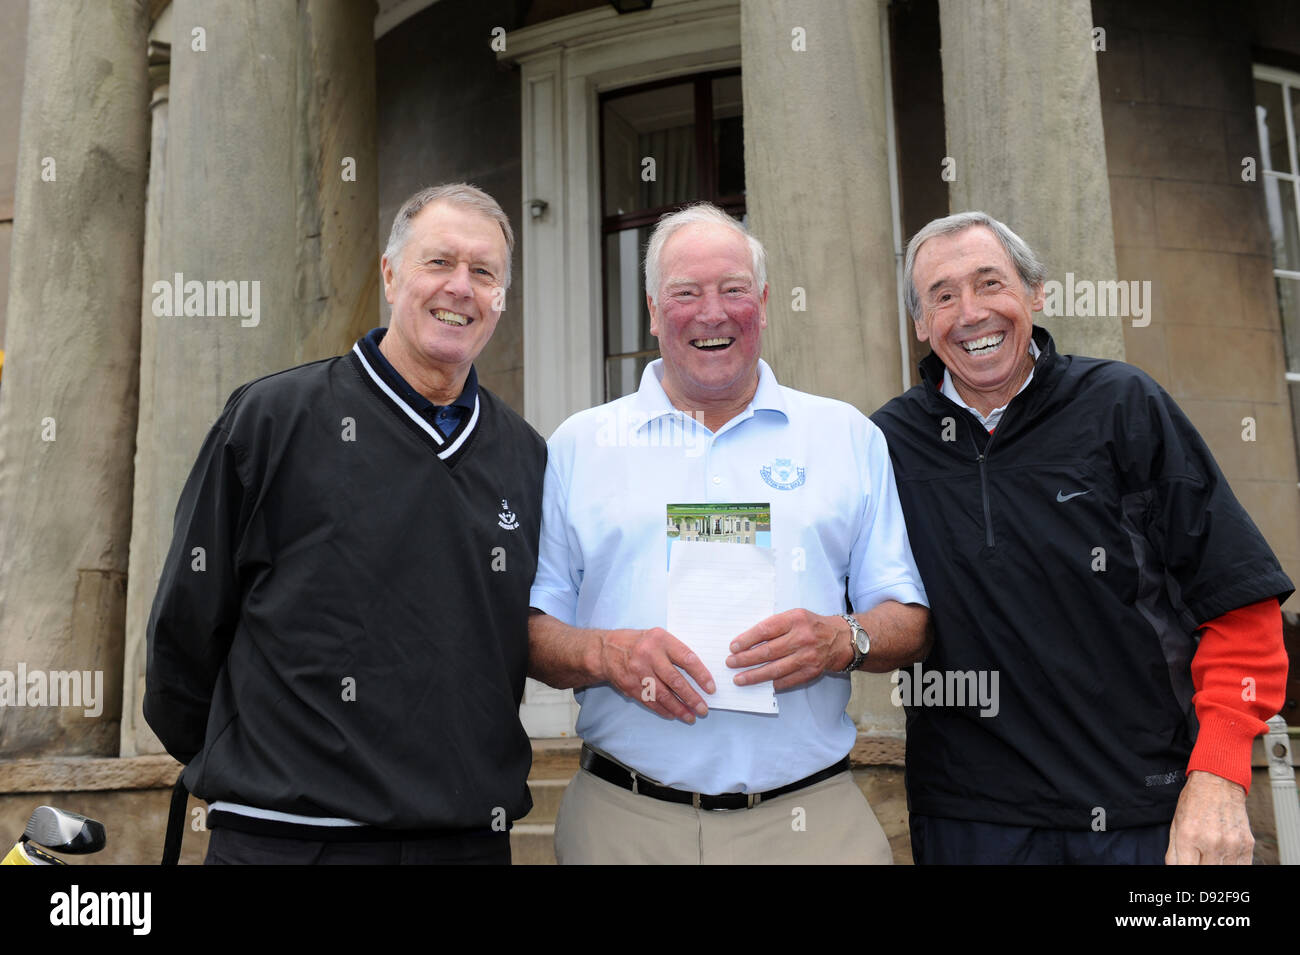 Englands 1966 world cup winning squad re-united on Brocton Hall Golf Course  Geoff Hurst, Ron Flowers, Gordon Banks - Stock Image